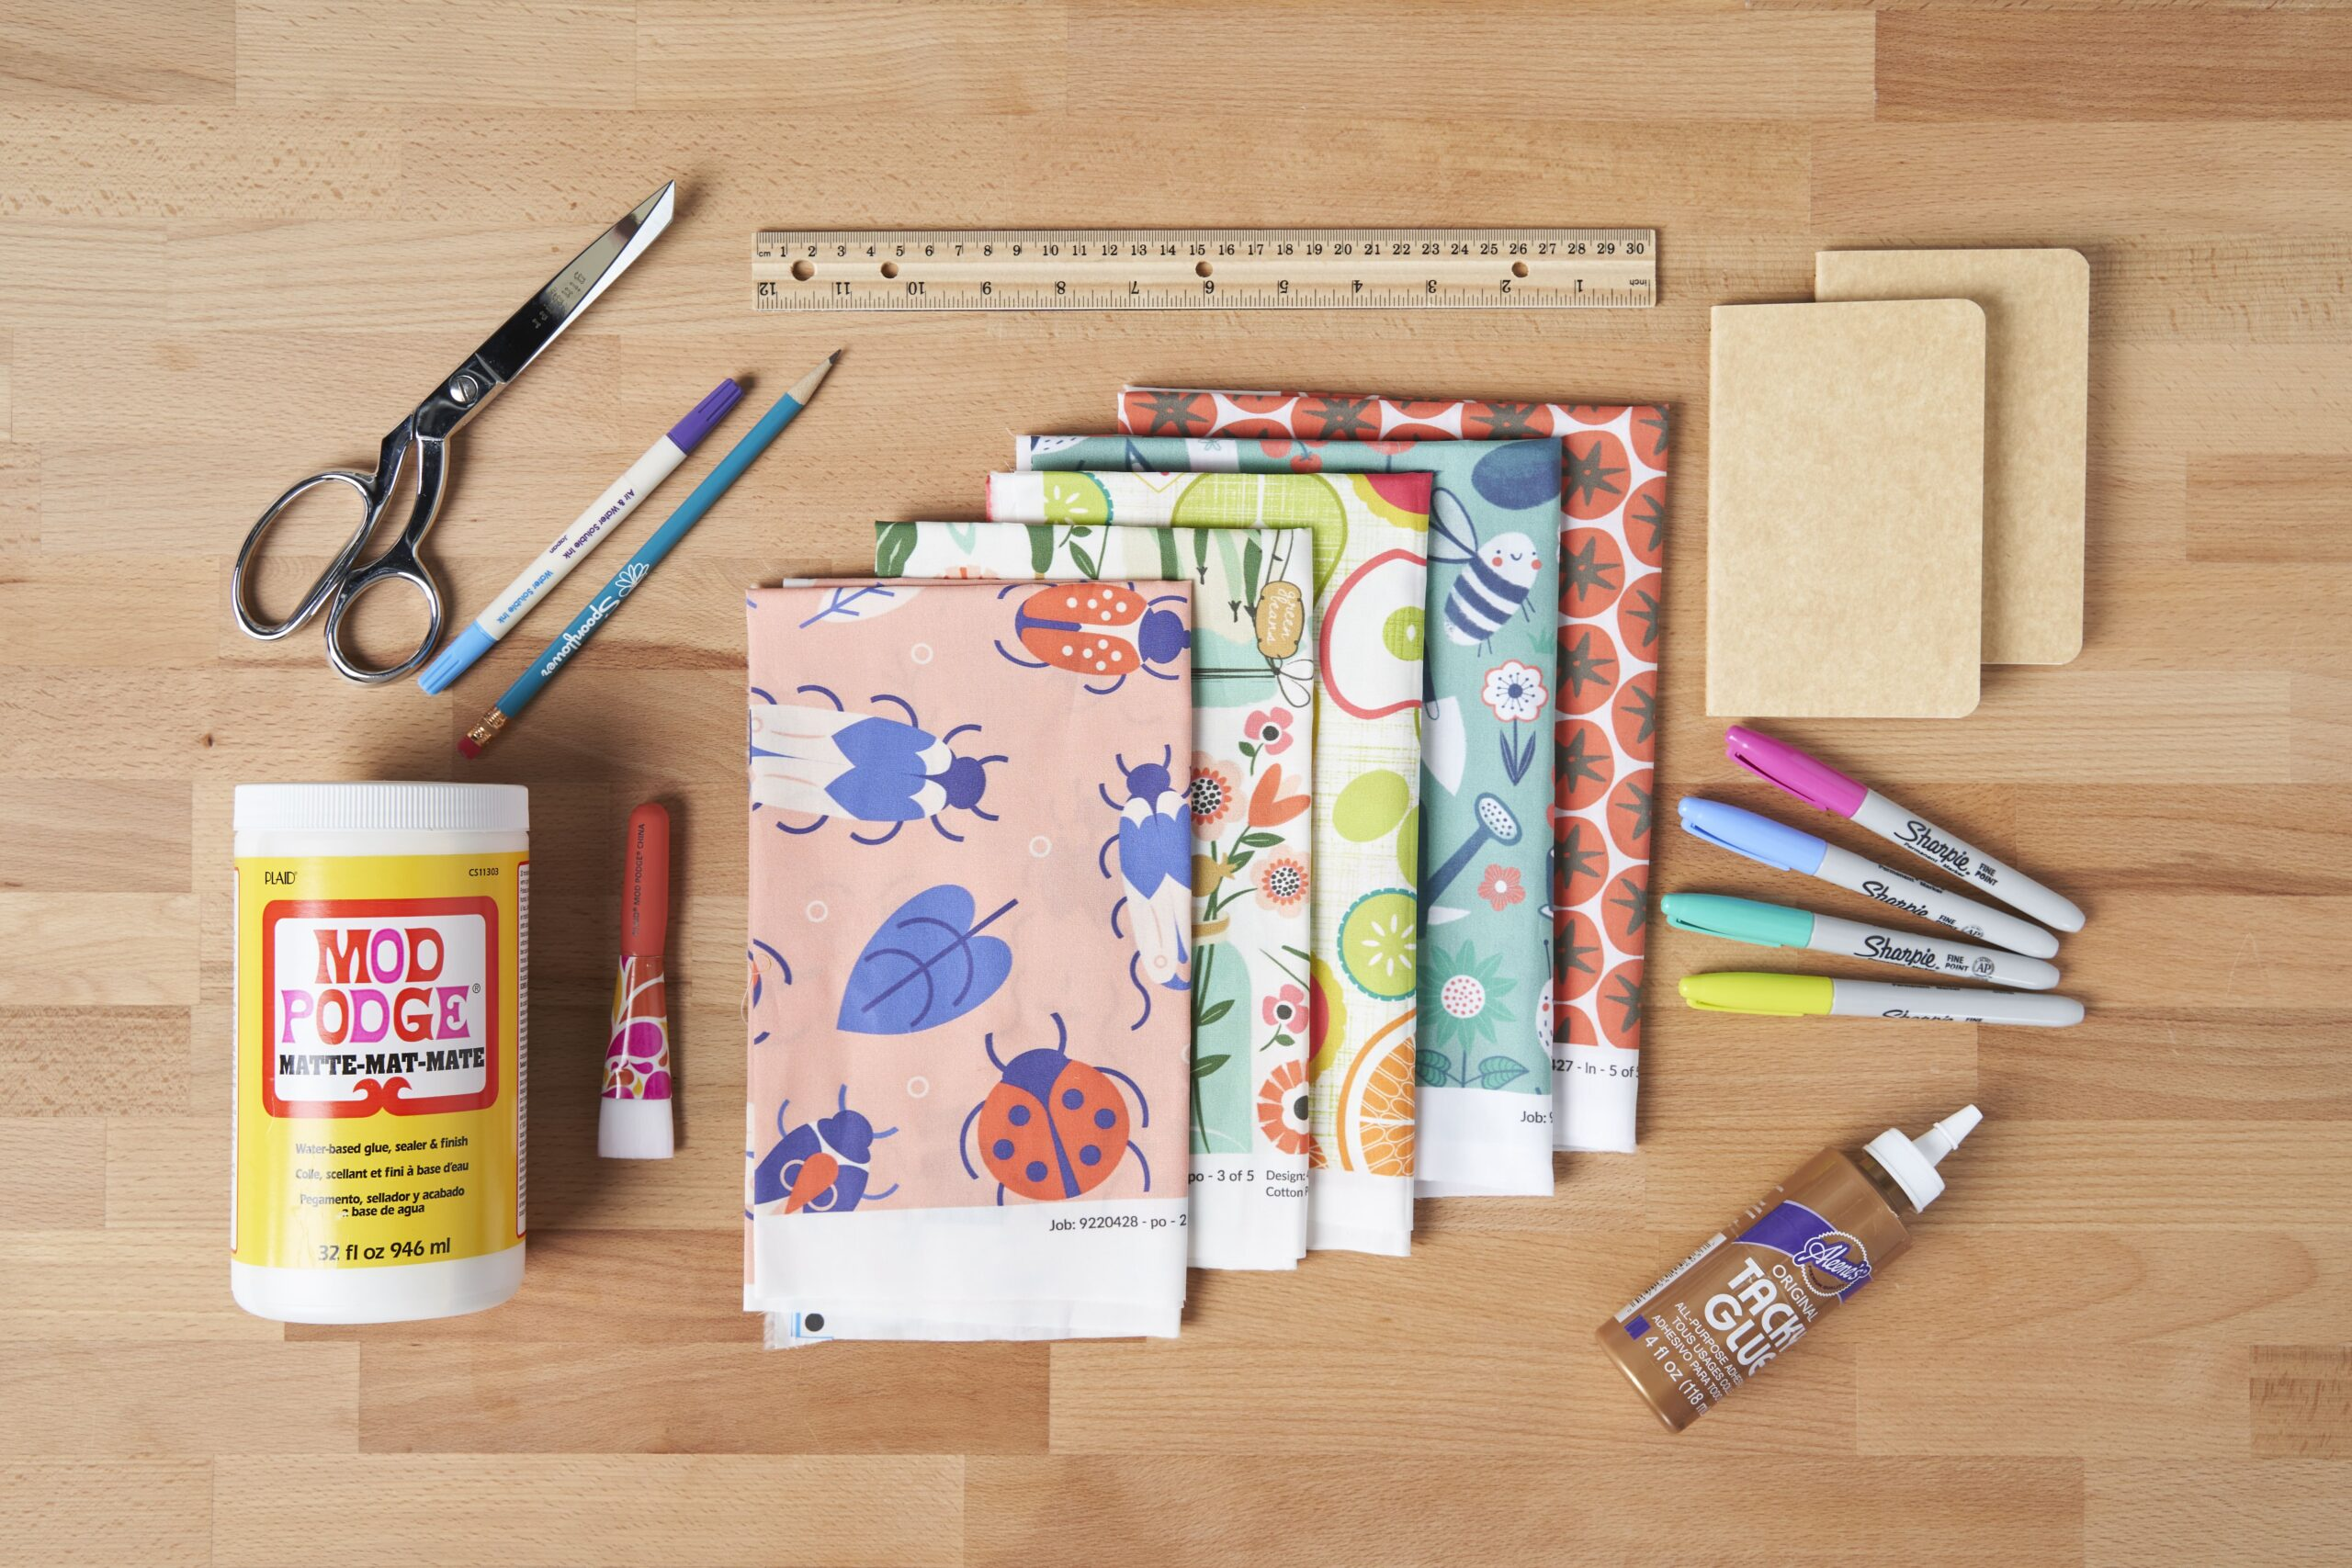 Supplies for the notebook cover spread out on a table